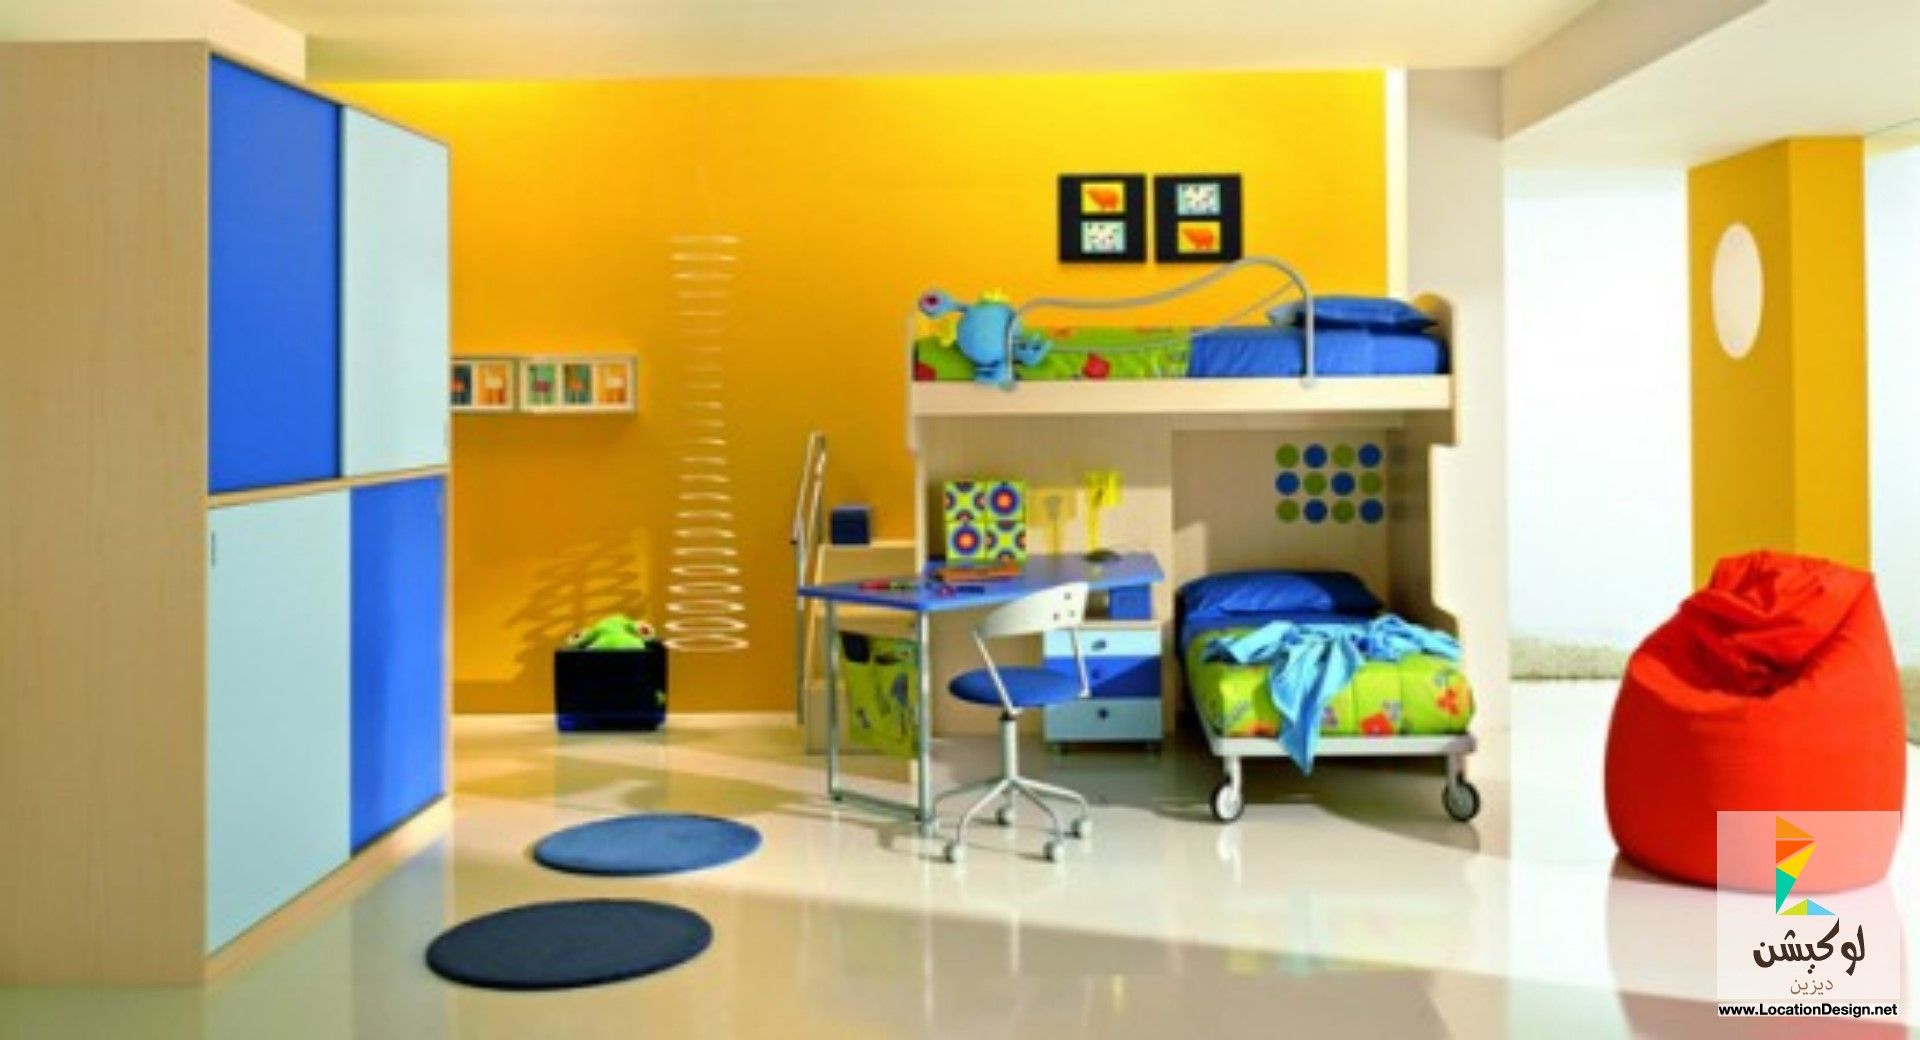 Explore Boys Bedroom Colors, Boy Bedroom Designs, And More